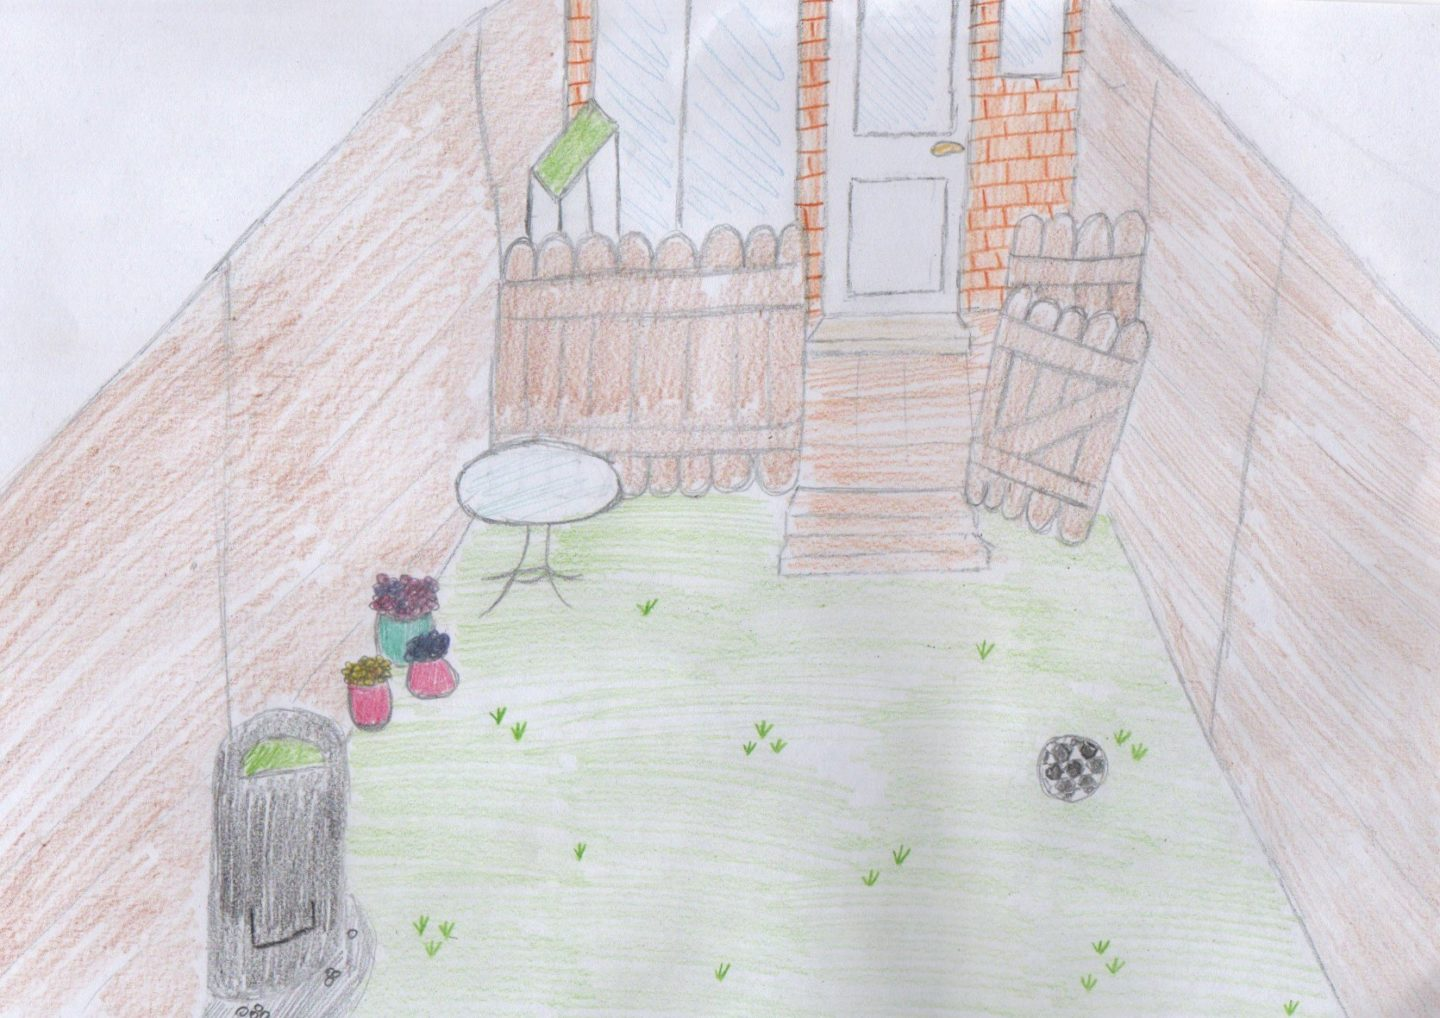 Sketch of garden makeover, including table